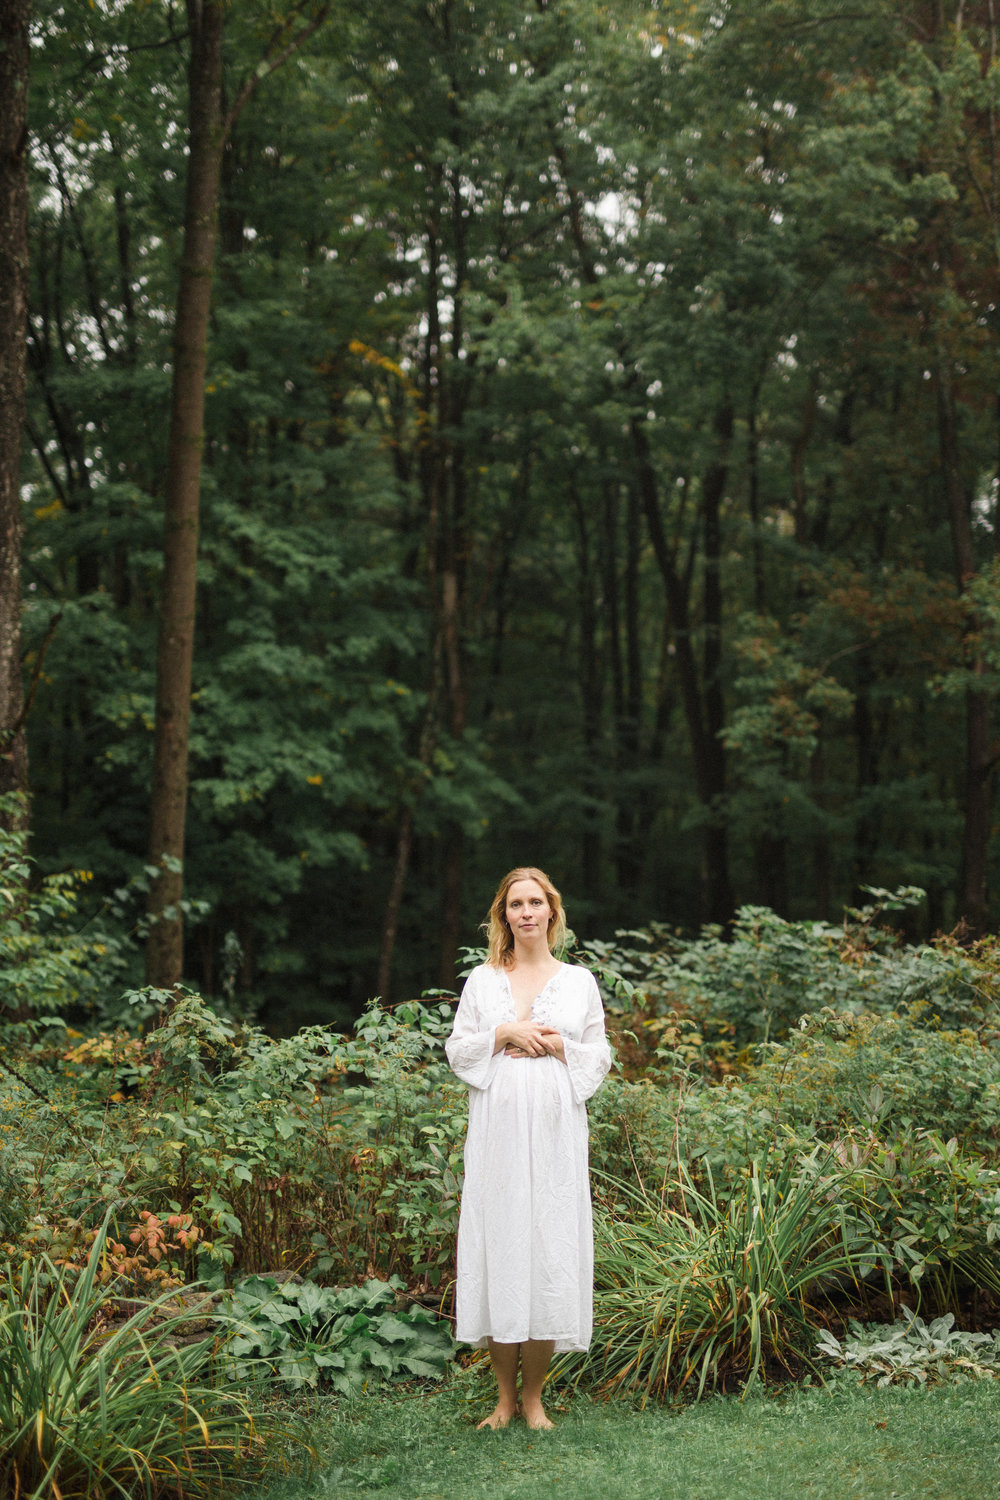 Fine Art Maternity Photographer_Meg Haley Photographs_062.jpg